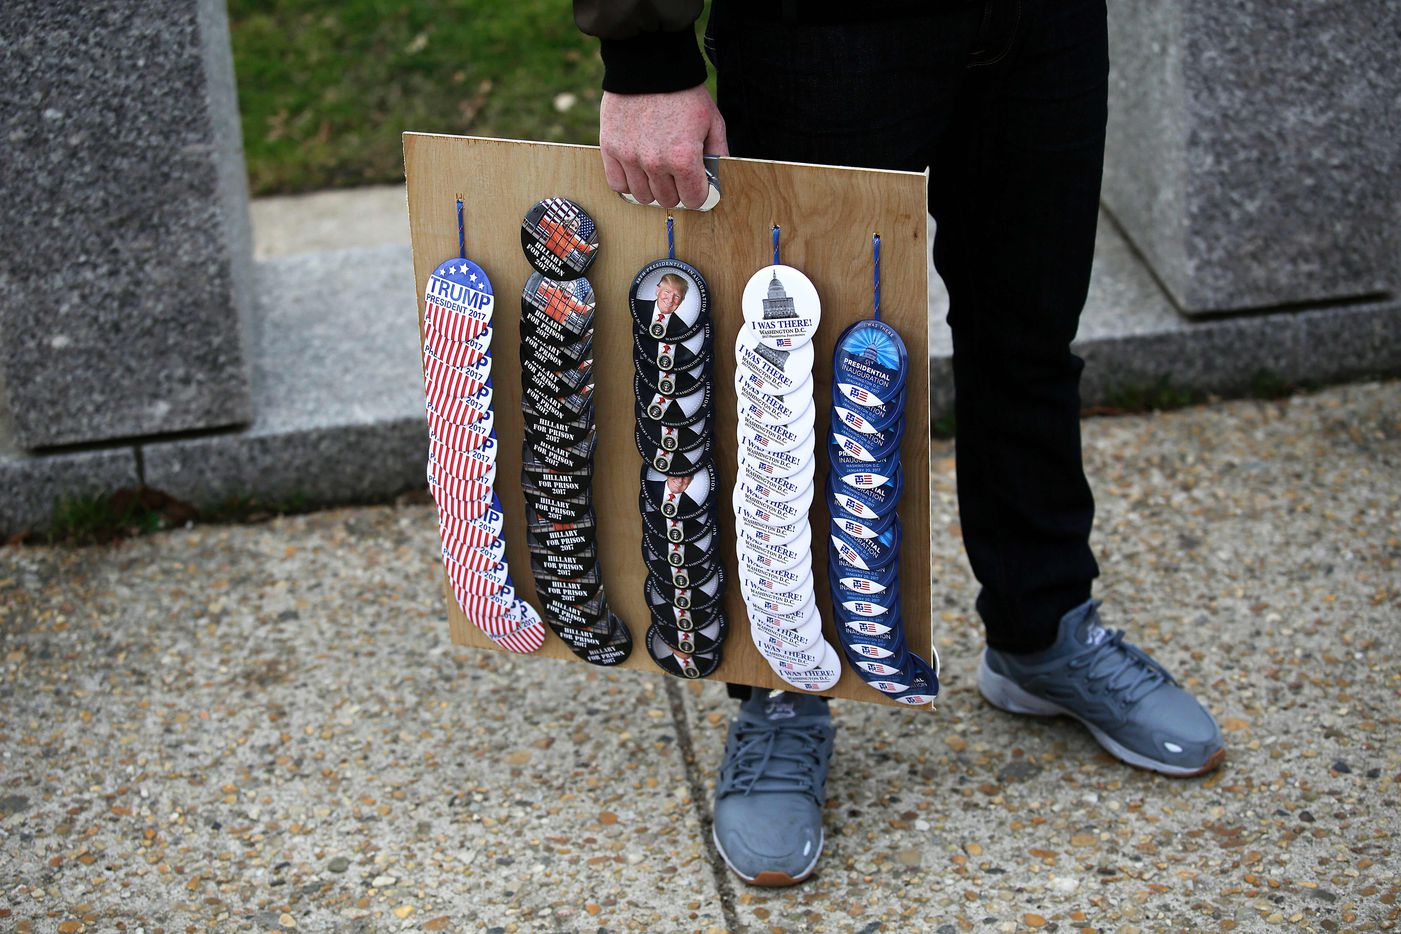 A vendor sells Donald Trump buttons along Constitution Avenue on January 19, 2017 in Washington, DC. President-elect Donald Trump will be sworn in January 20 as the 45th President of the United States.